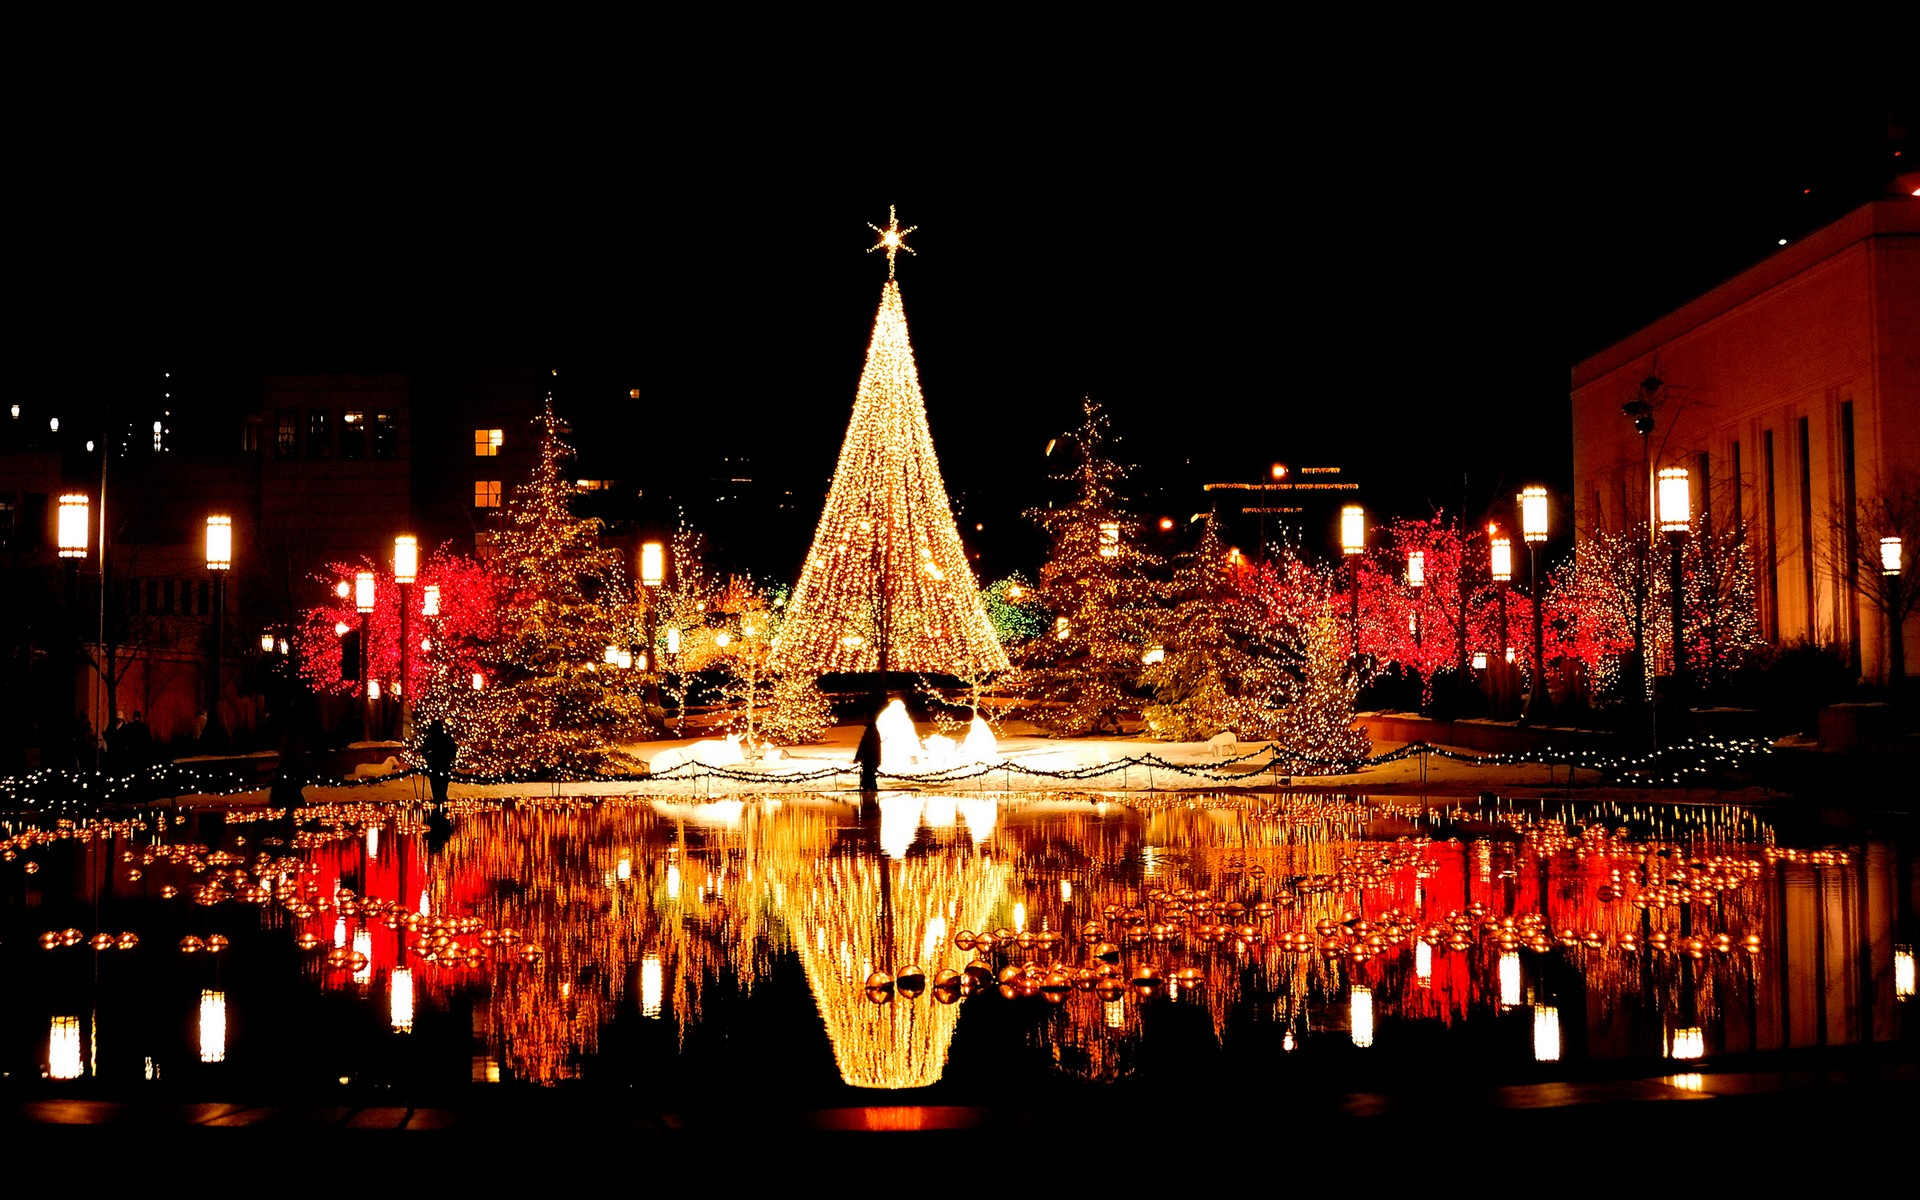 The Philippine's Christmas Traditions - ThingLink